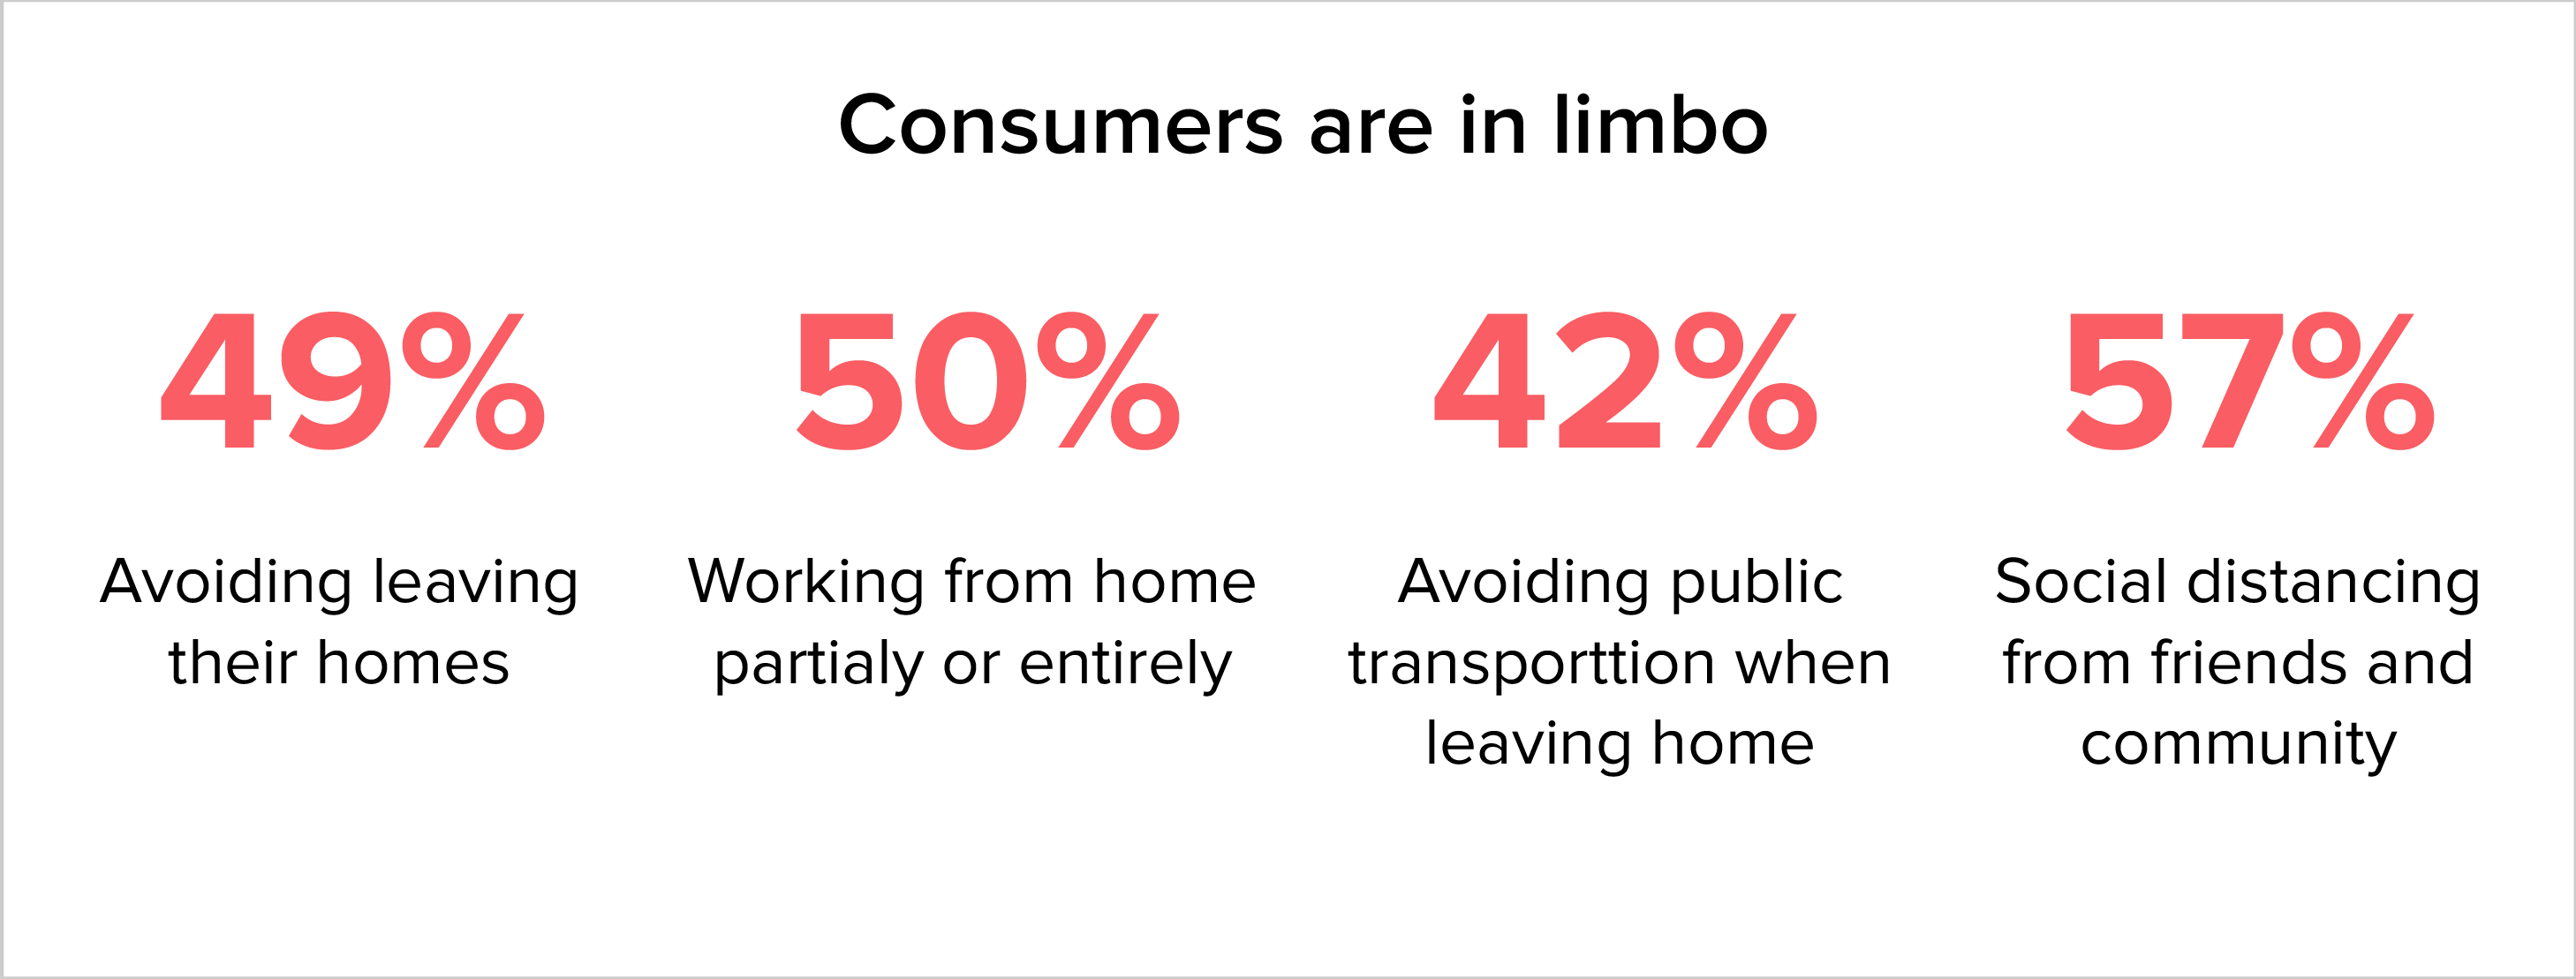 consumers are in limbo